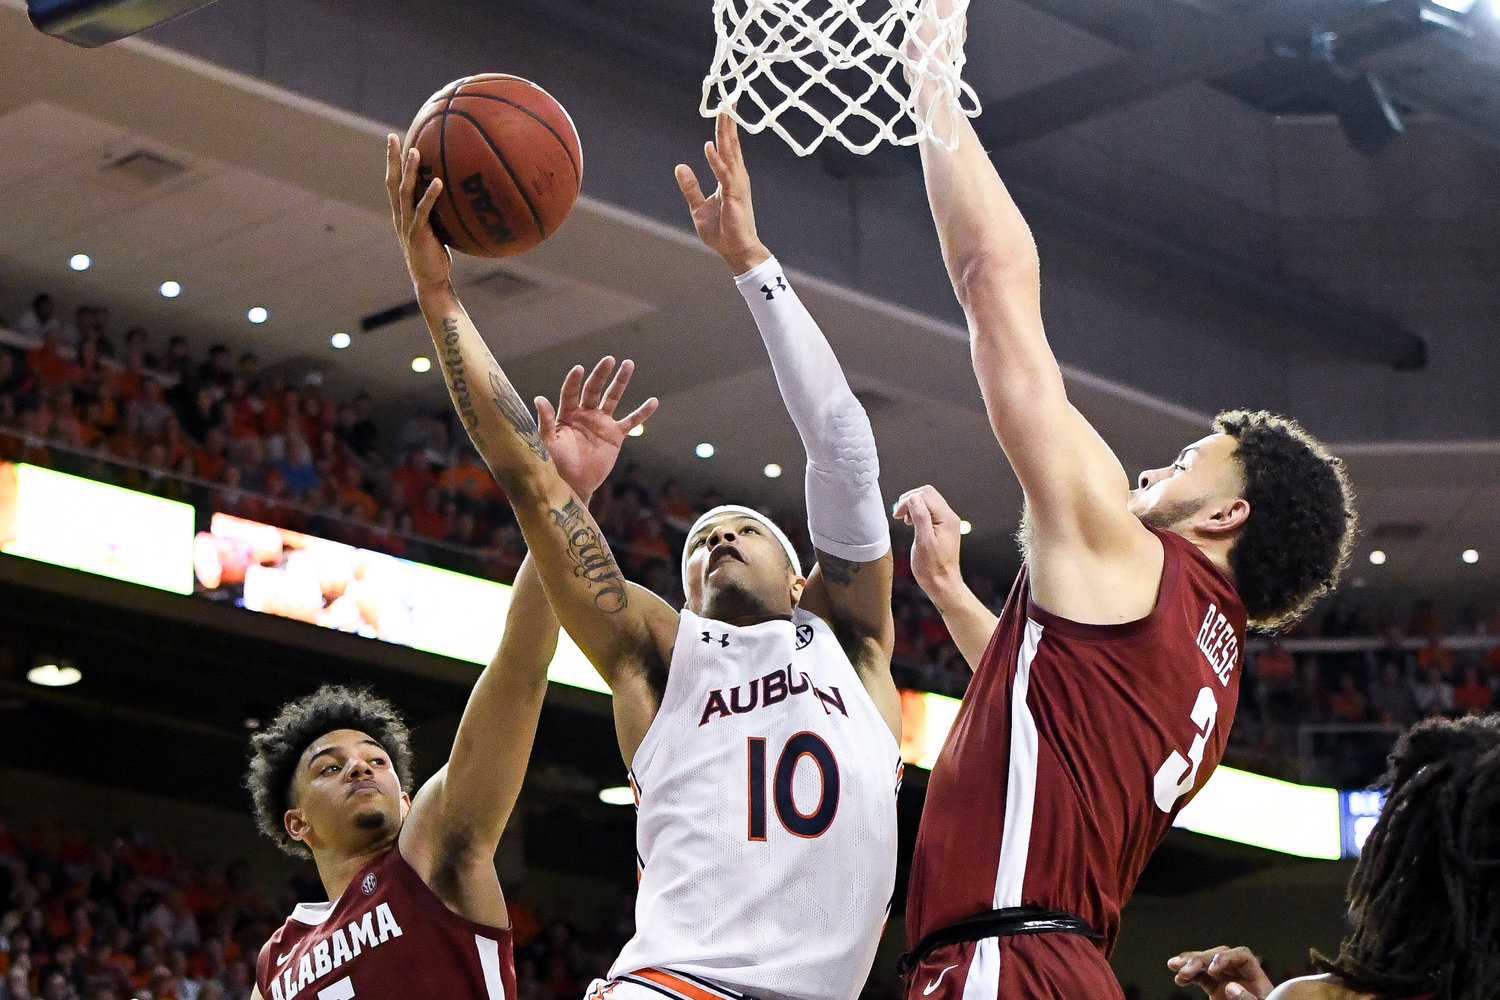 Alabama guard Jaden Shackelford (5) and Alabama forward Alex Reese (3) defend a shot by Auburn guard Samir Doughty (10) during overtime of Wednesday's game.